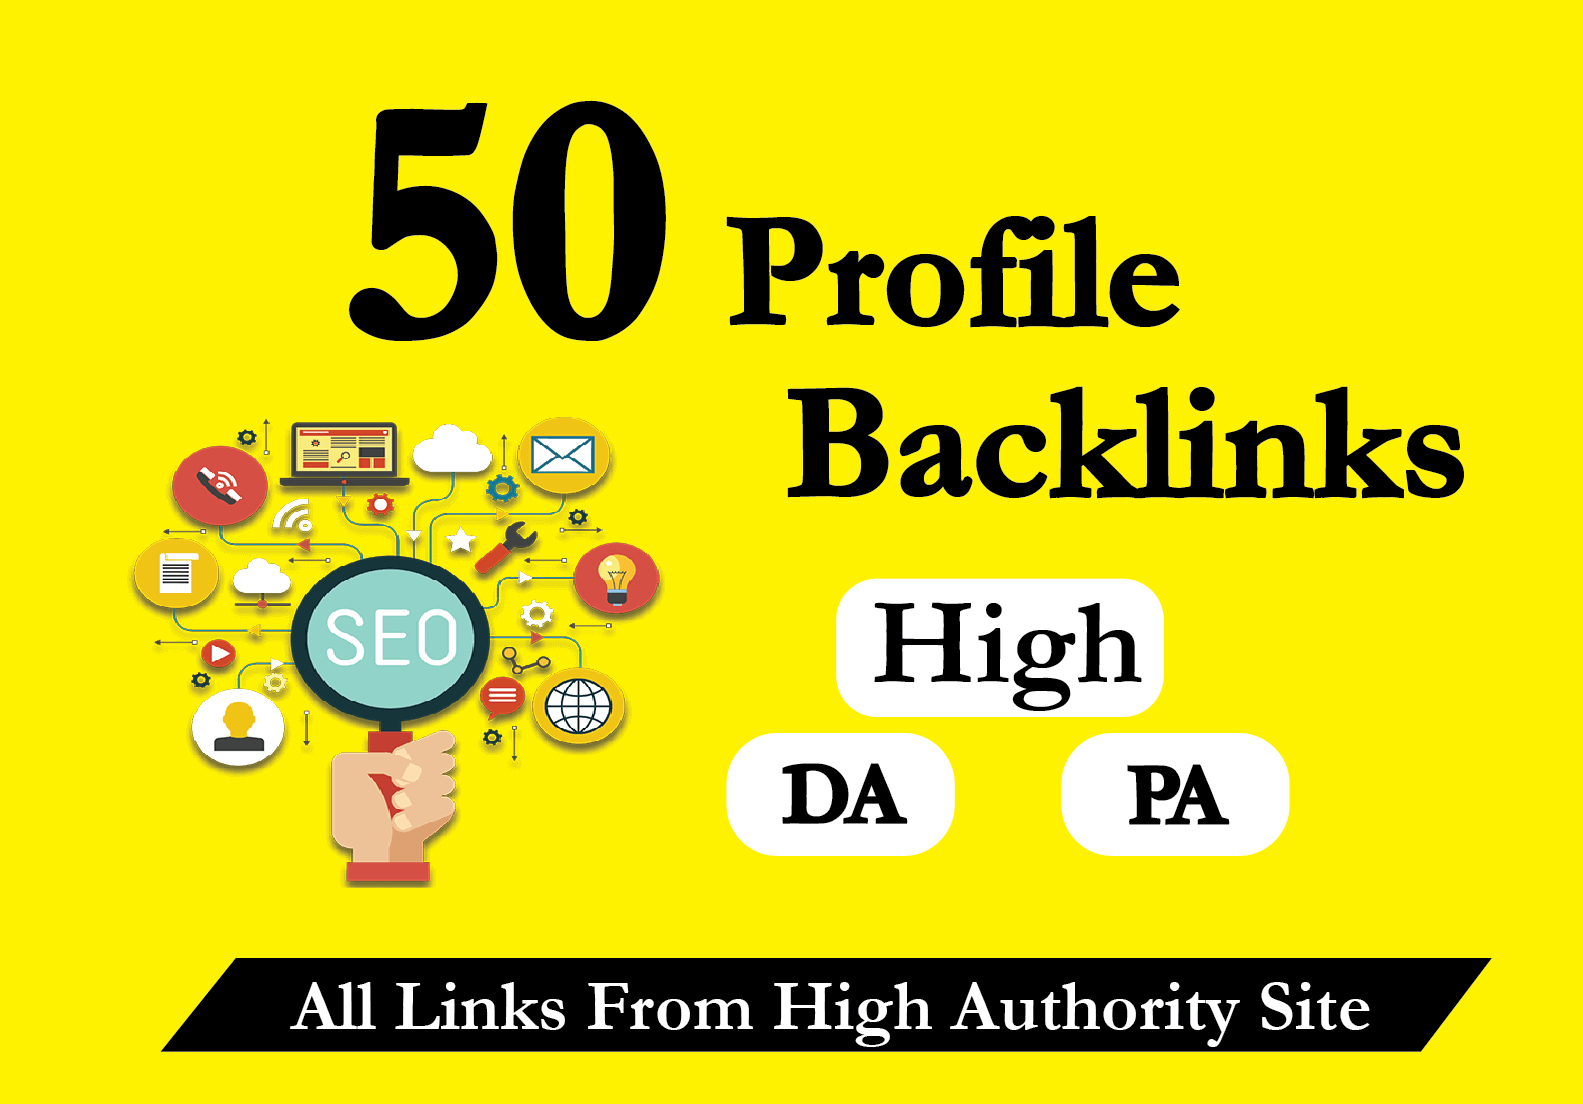 I Will Create 50 High Authority 80+ DA PA Profile Backlinks Creations Manually for SEO Ranking